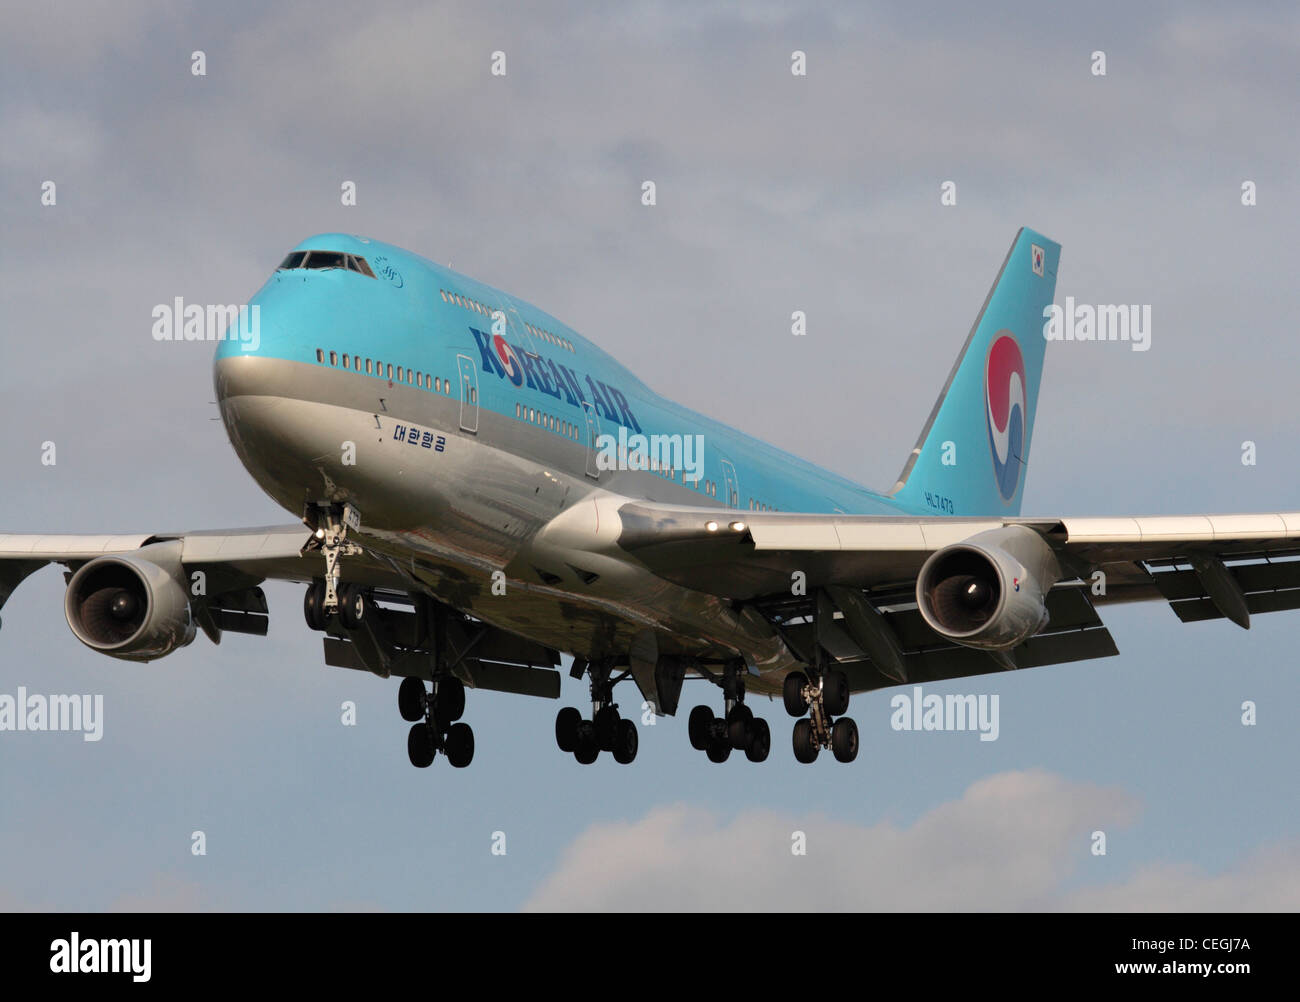 Commercial air travel. Close-up view of a Korean Air Boeing 747-400 on final approach Stock Photo